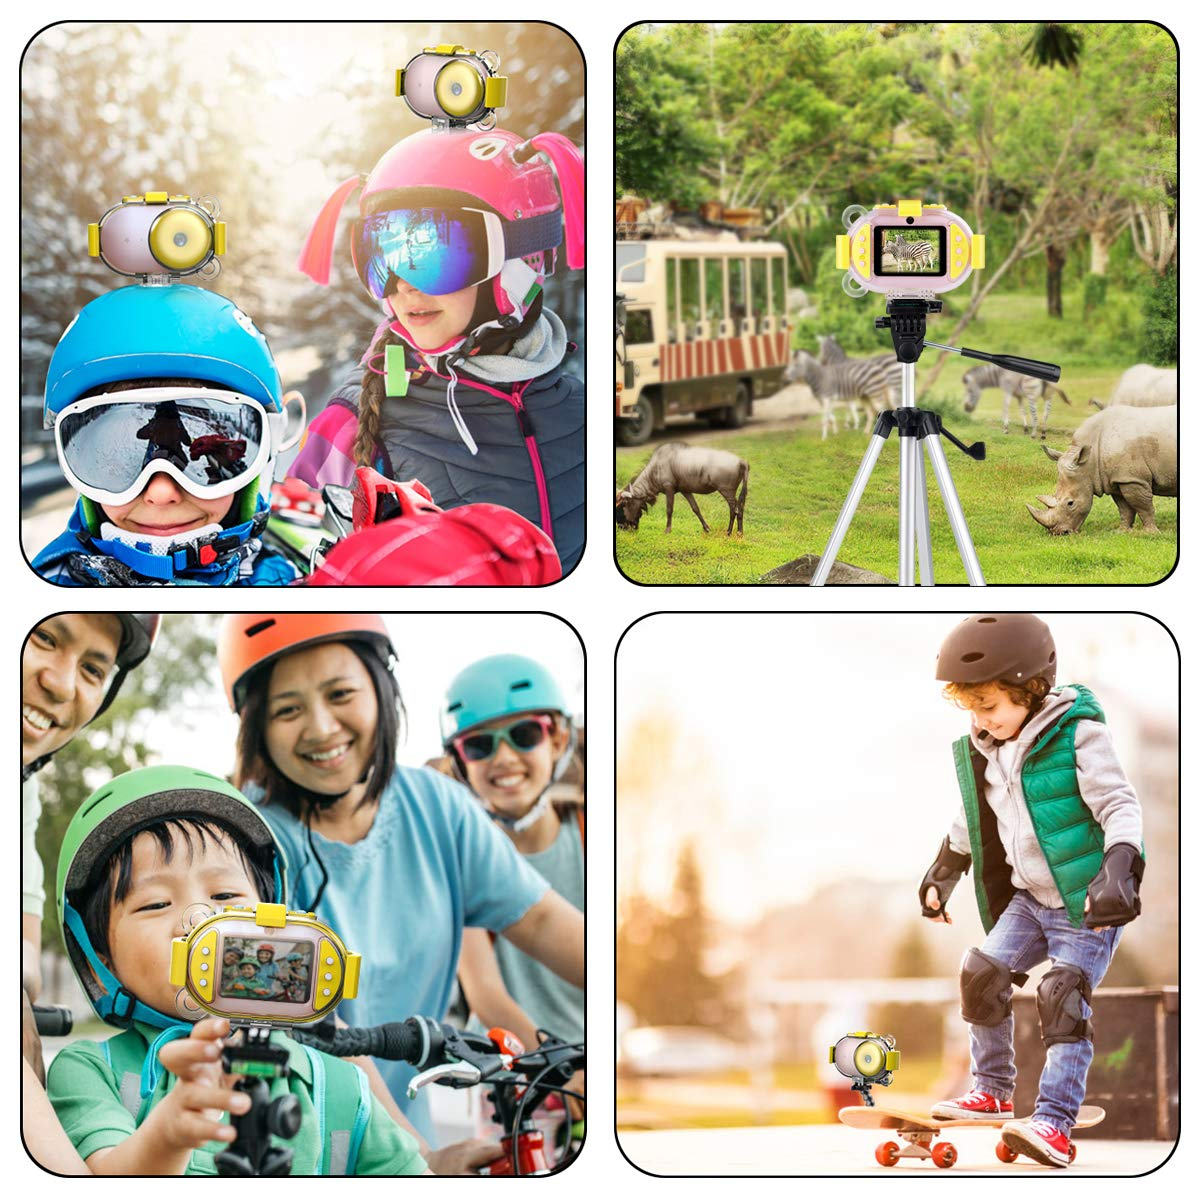 Kids Camera, OPOLEMIN Kids Waterproof Camera Kids Video Camera with Sound Playback Underwater Digital Camera Camcorderfor Kids with 16G Memory Card for Children's Day Birthday Trip Beach Swimming by OPOLEMIN (Image #6)